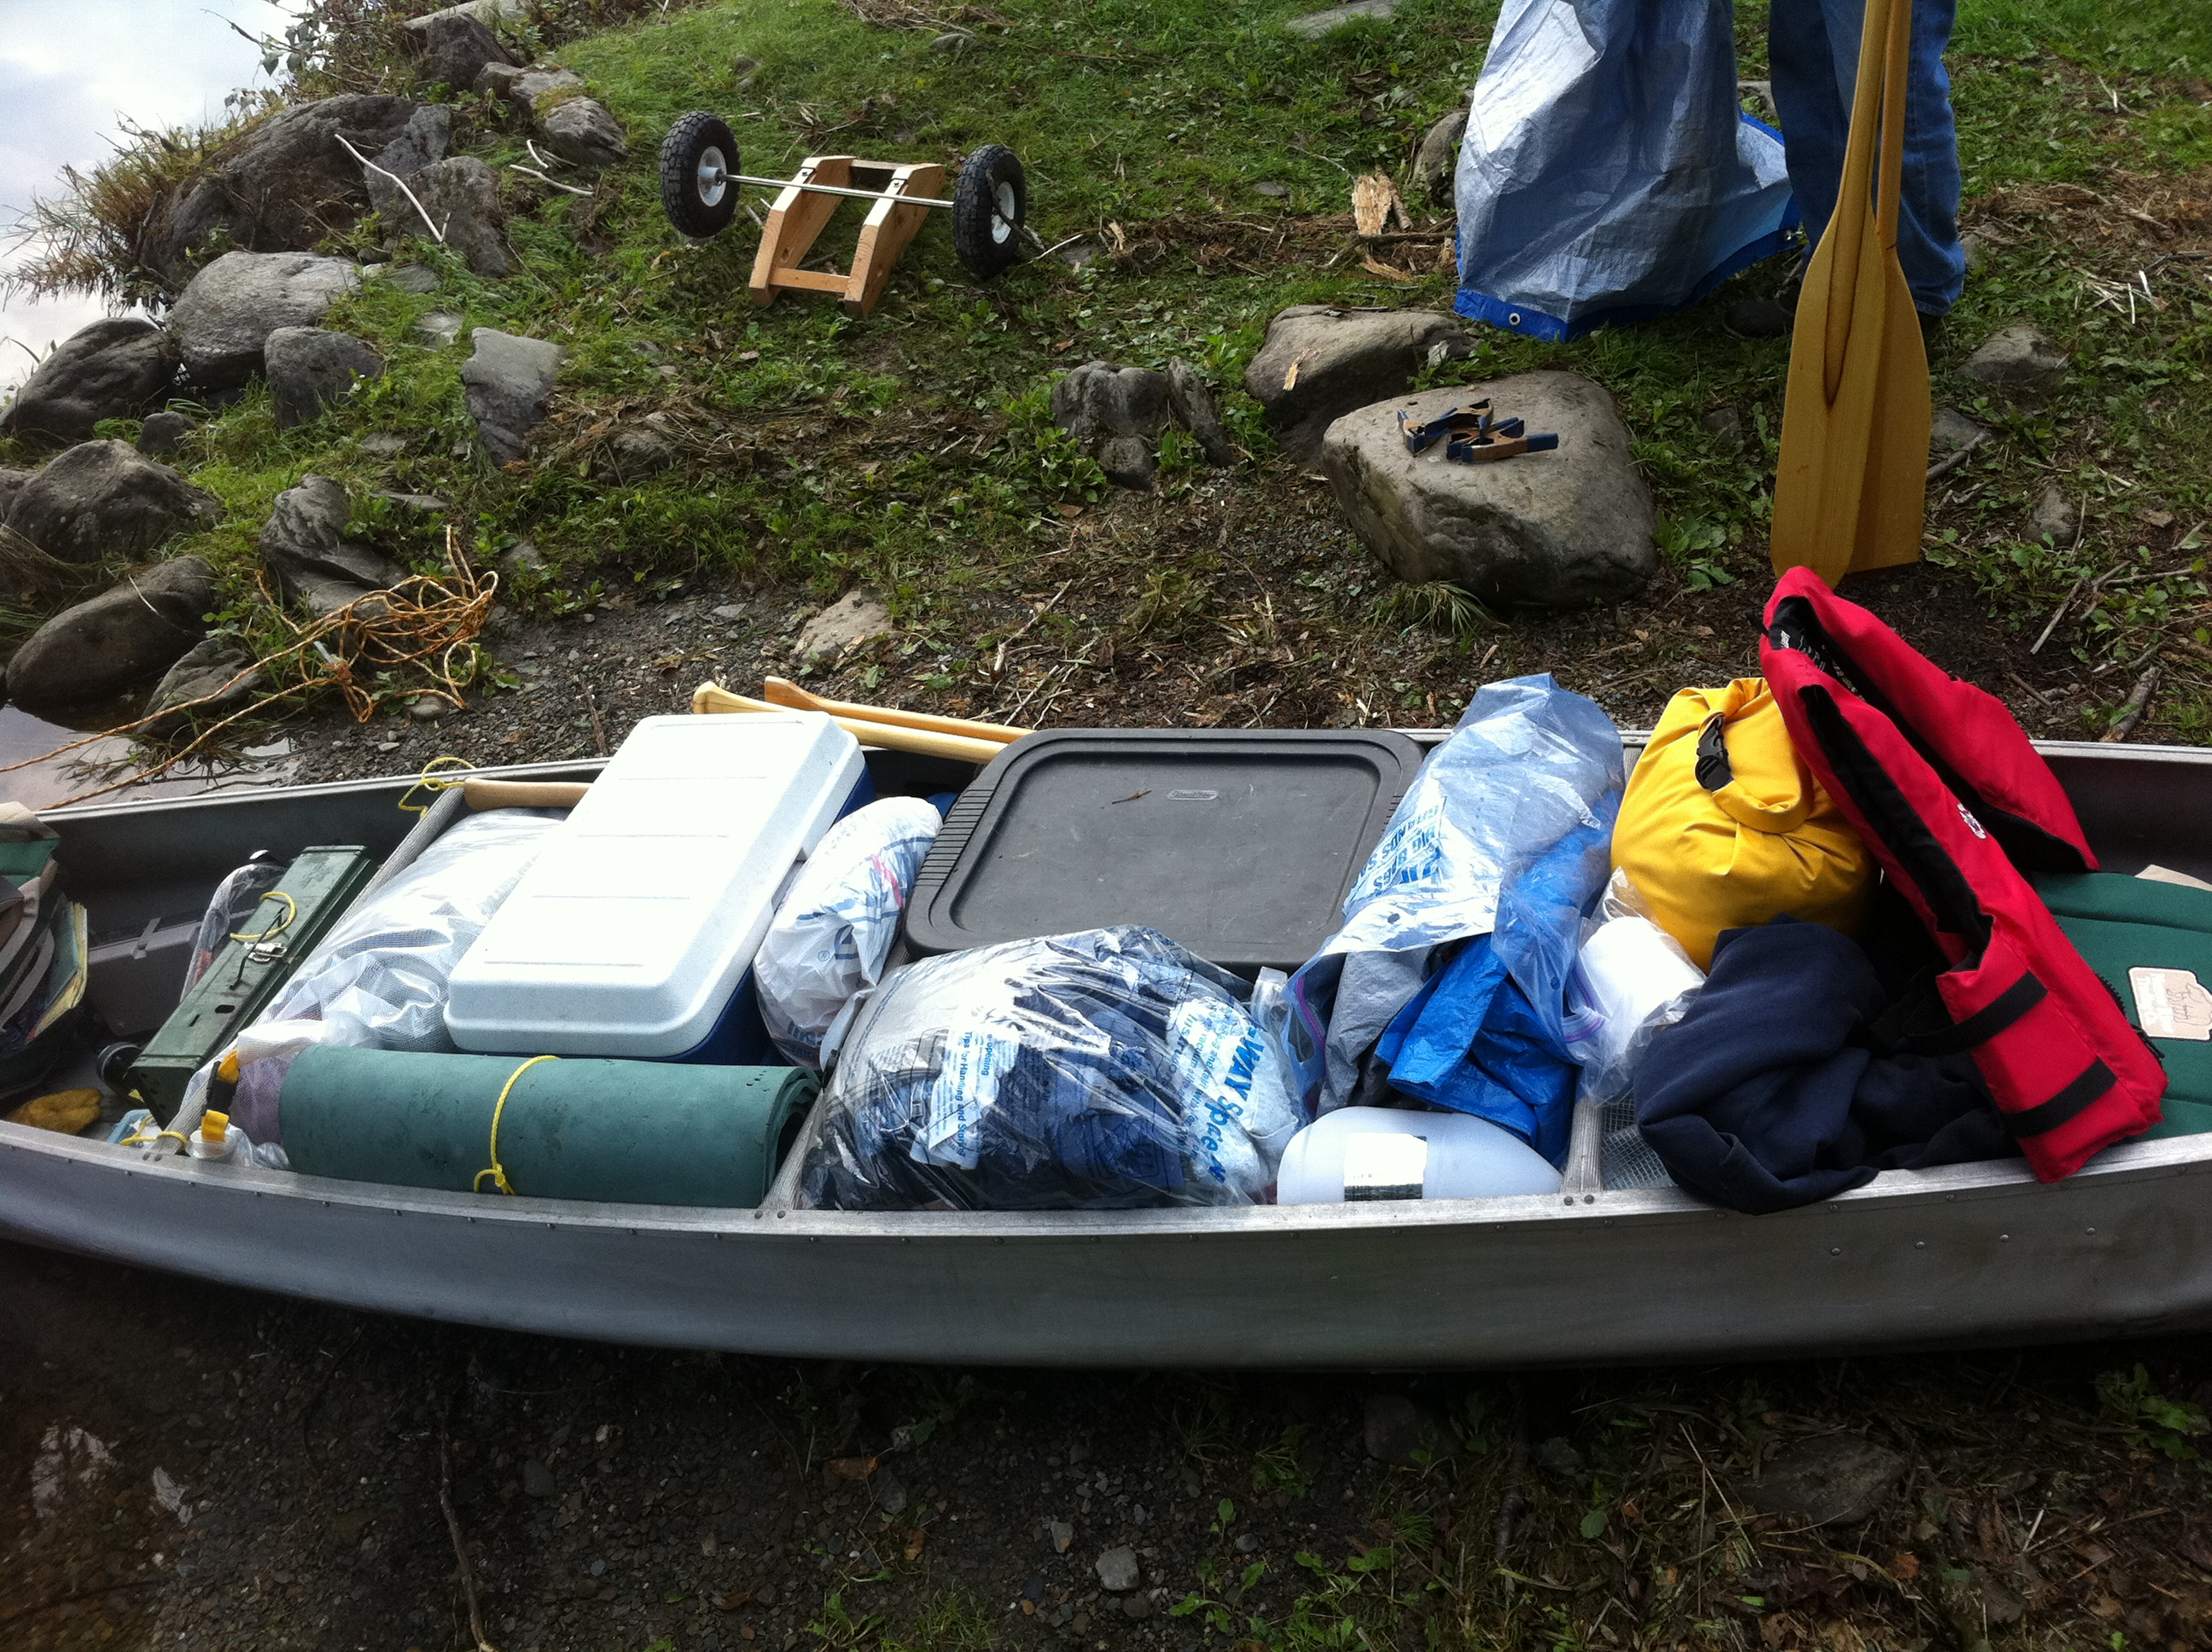 canoe camping checklist - what not to take